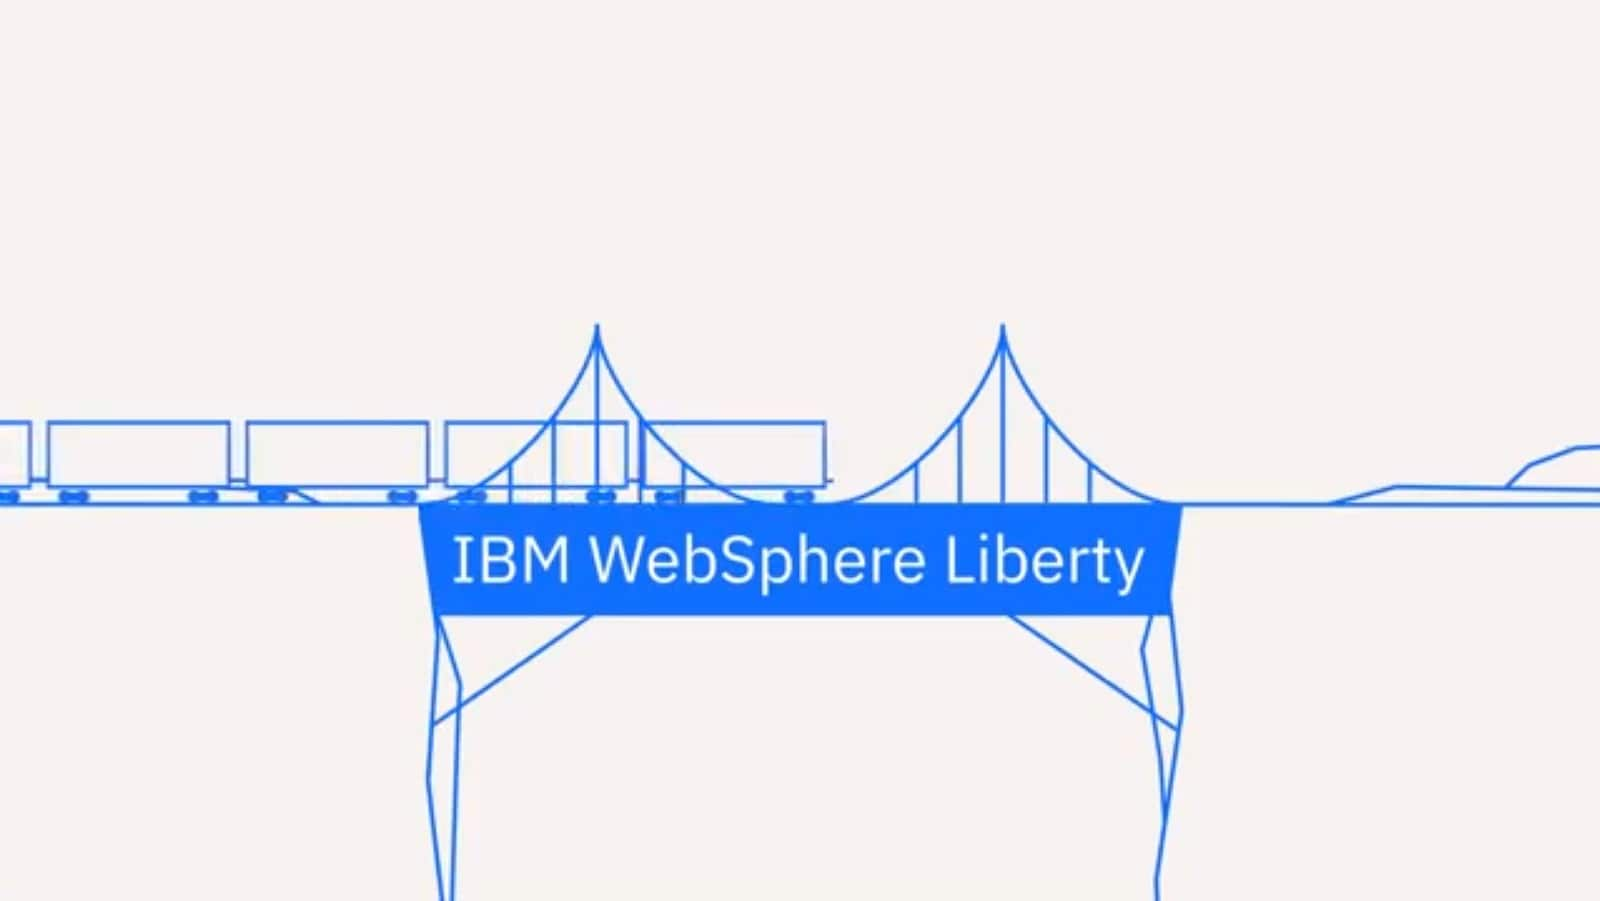 Bridge the gap between old and new apps with IBM WebSphere Liberty